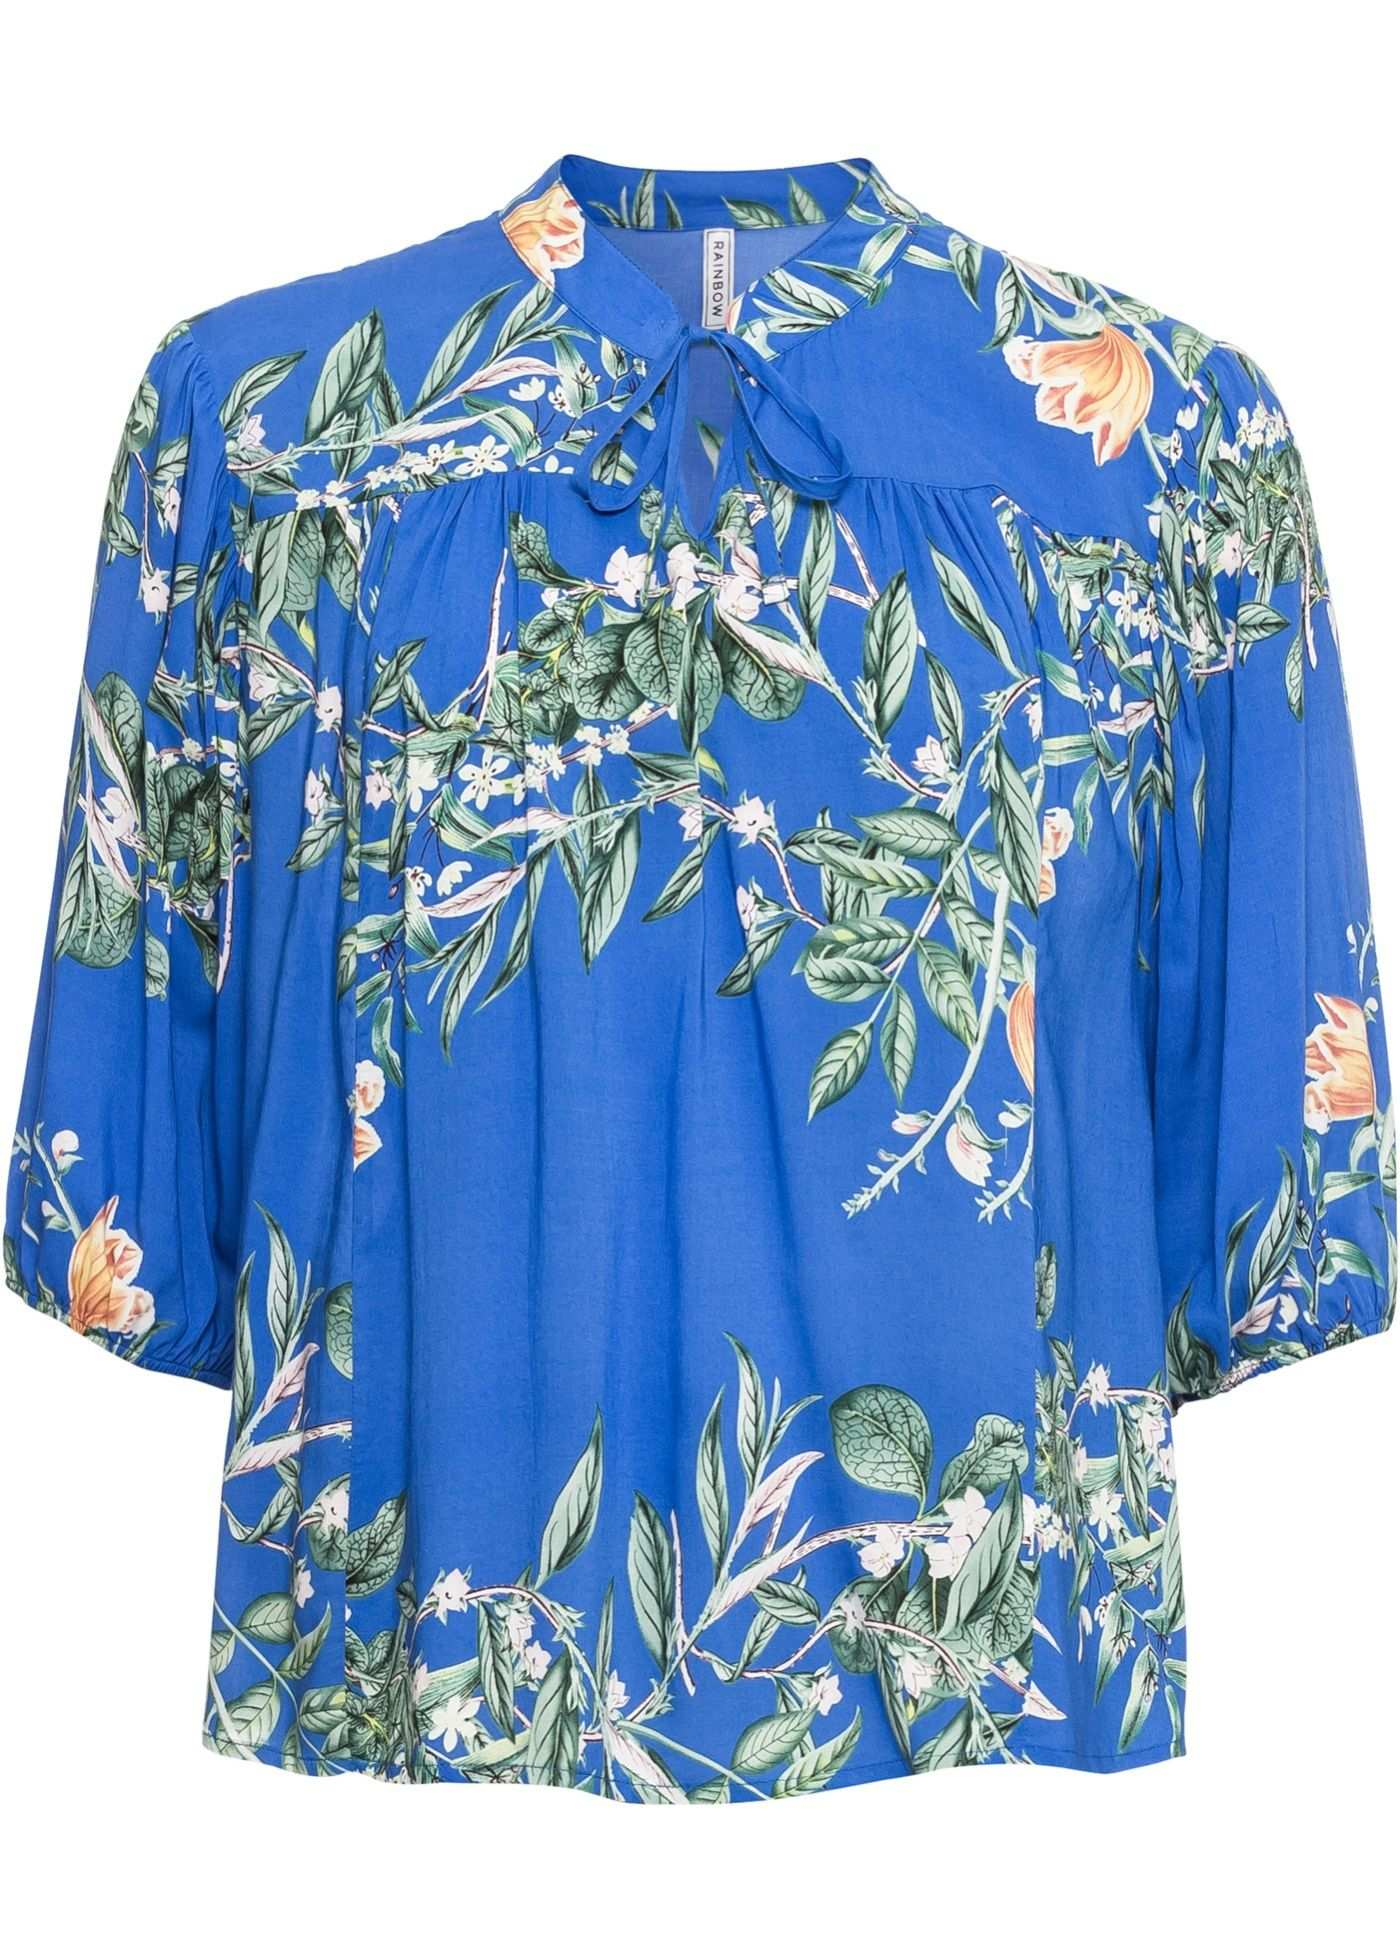 Tunika Bluse Stretch Jeans Floral Muster